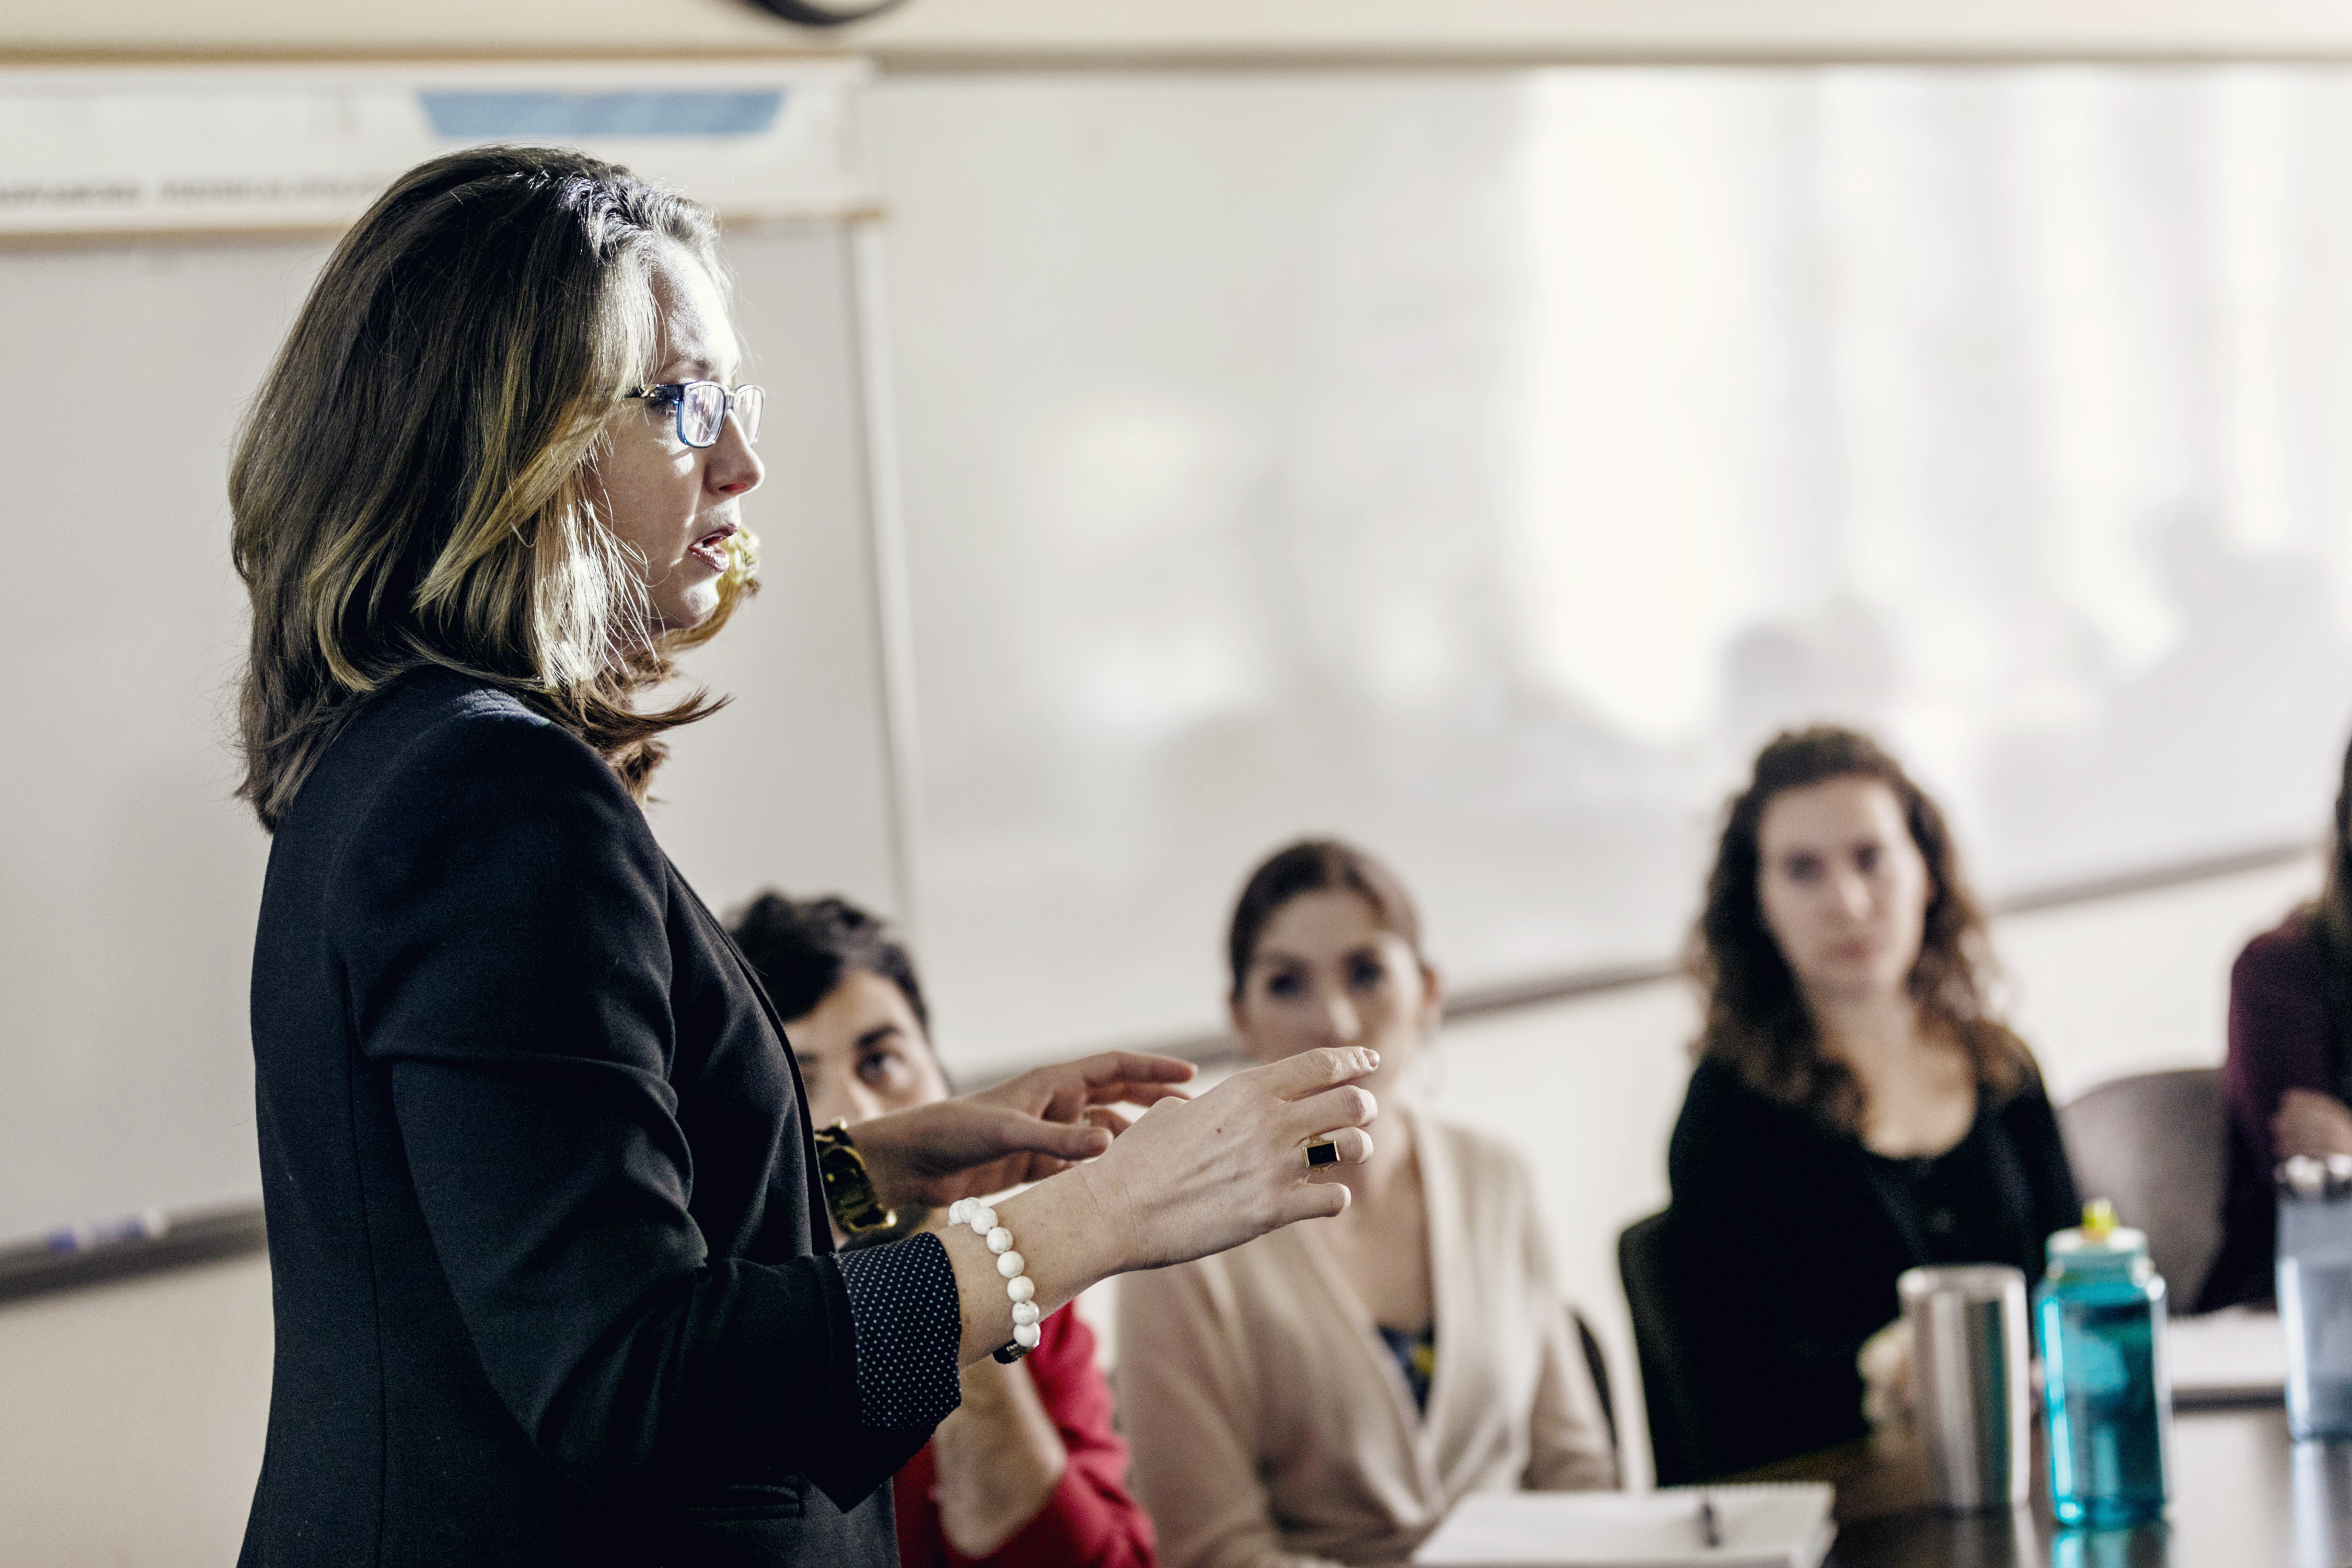 A professor, seen in profile, speaks to her assembled class.